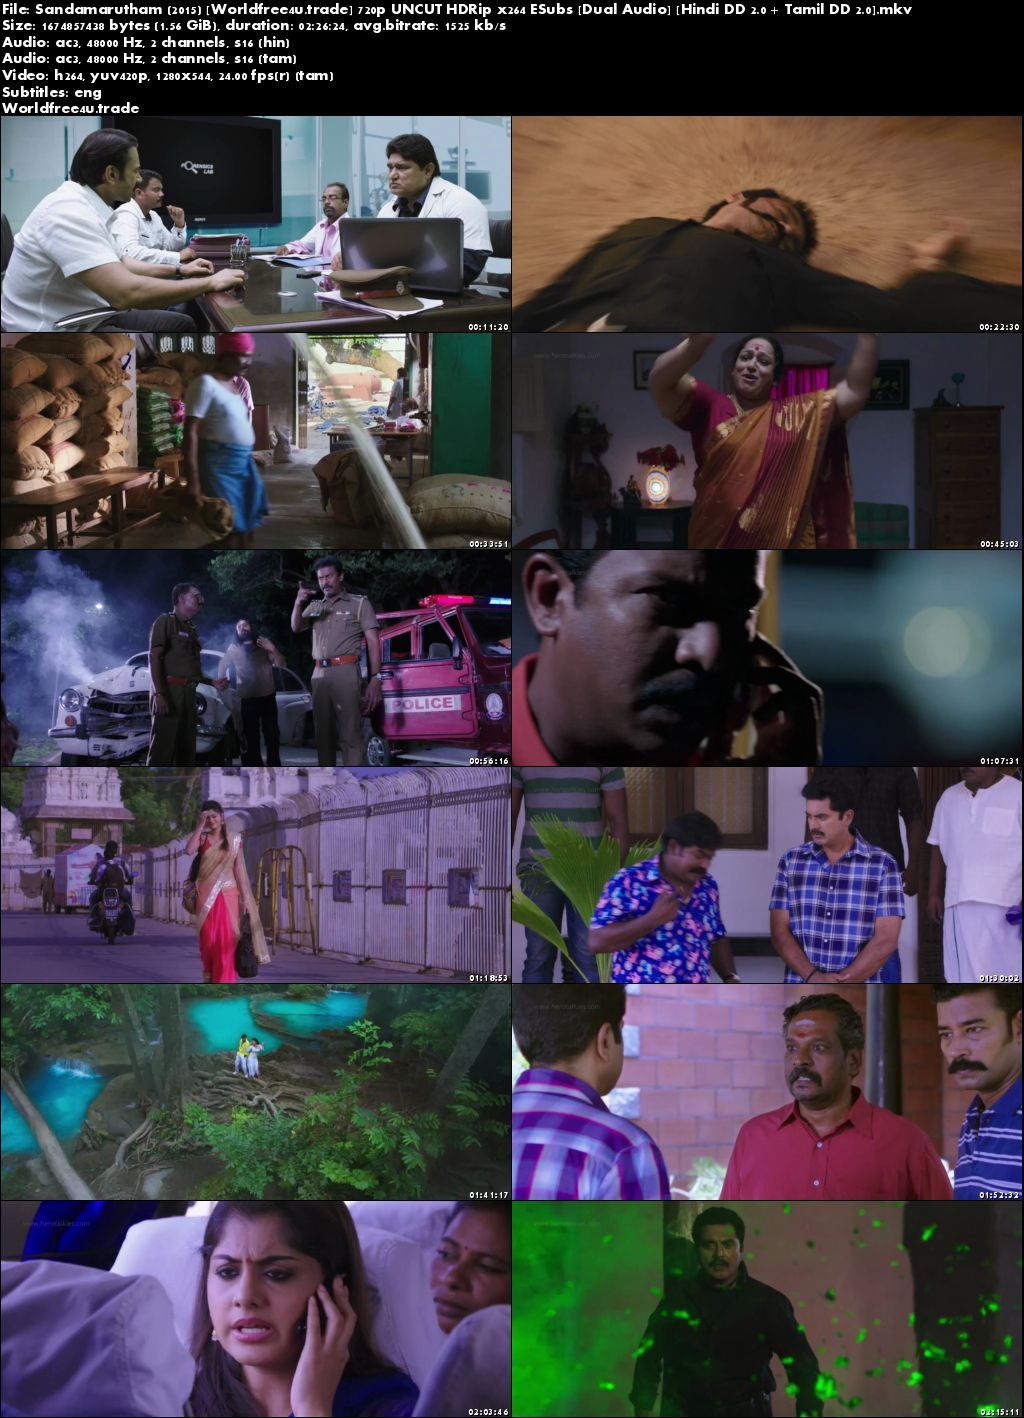 Sandamarutham 2015 HDRip Hindi 1.1Gb UNCUT Dual Audio 720p Bolly4u.org